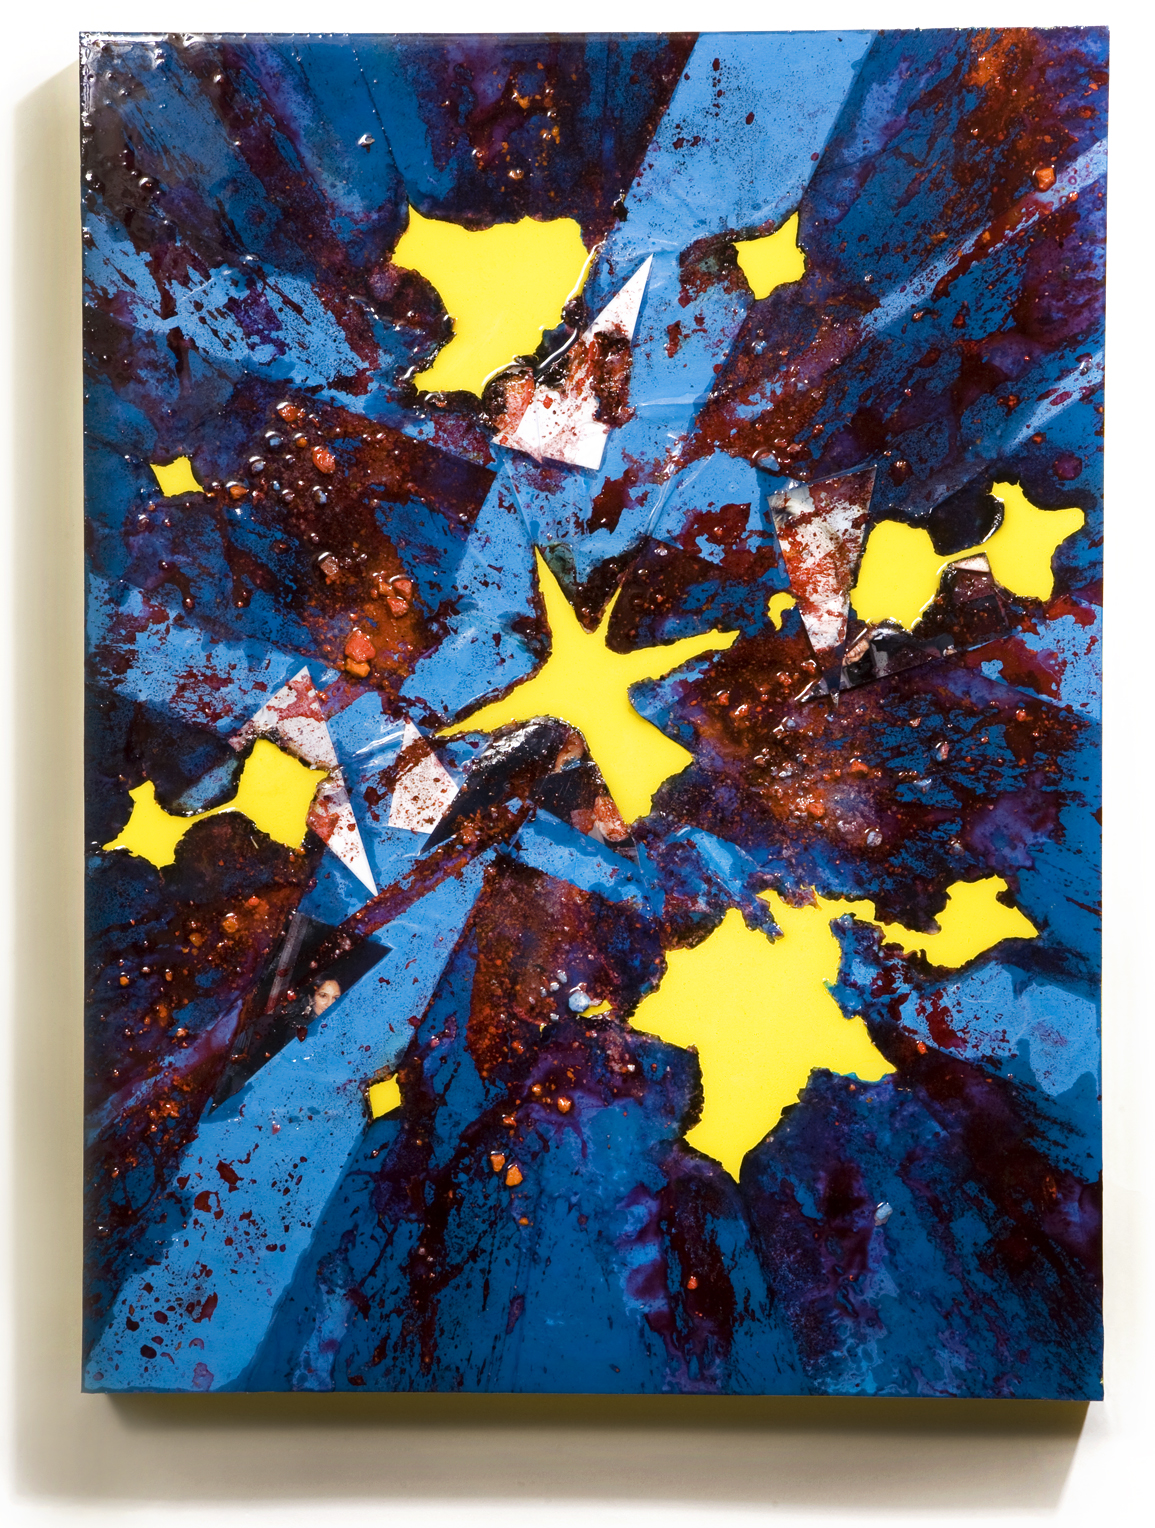 """SERIE I, Untitled (blue/yellow), photographs, photo background paper, chalk, spray paint, packing tape, powder drink, glue, epoxy resin on wood panel, 16""""x20""""x2"""", 2019"""